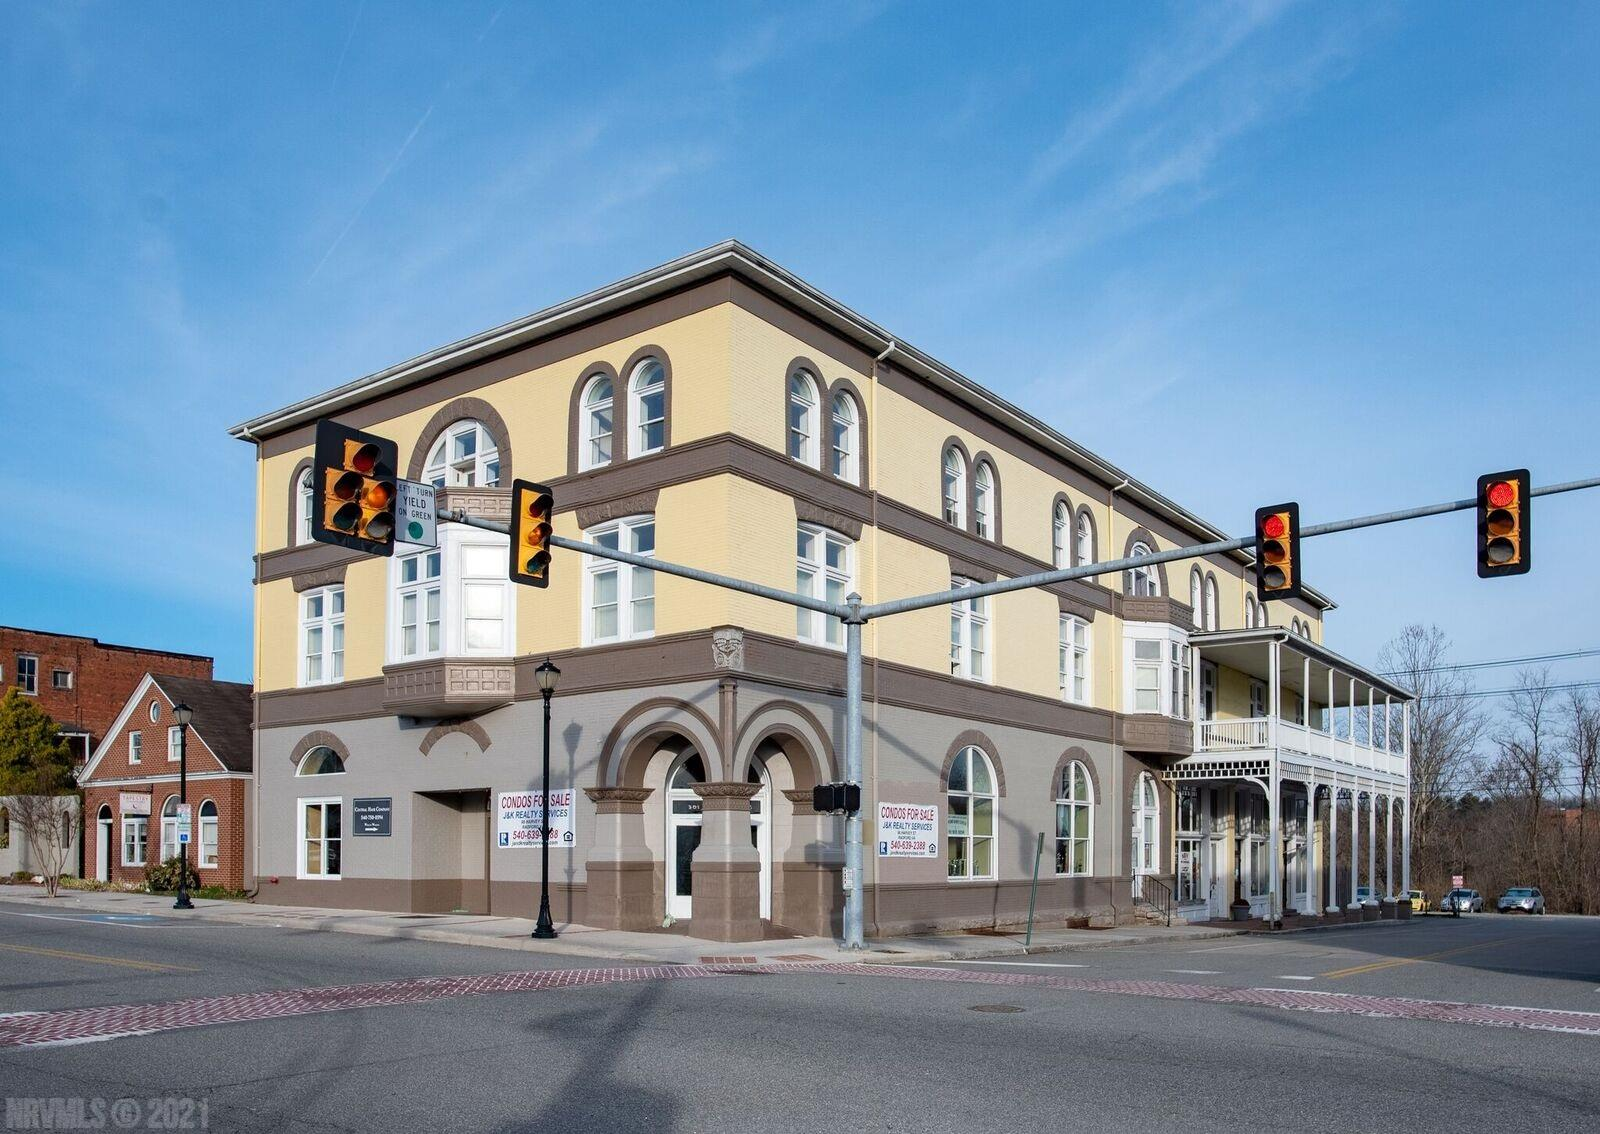 Beautiful restored historic building with 19 Condo Units that include an Efficiency, 1, 2 or 3 Bedrooms. Building is equipped with Elevator as well as indoor and outdoor stairwells. Great location in Radford within walking distance to stores, restaurants and Bisset Park.  Short distance to Radford University.  Ideal for owner living or investment with great rental history.    Historic Building that was completely renovated in 1980 to single apartments suited for condo living.  The unit includes all appliances plus washer and dryer. Walk in closet, tall ceilings and large windows.